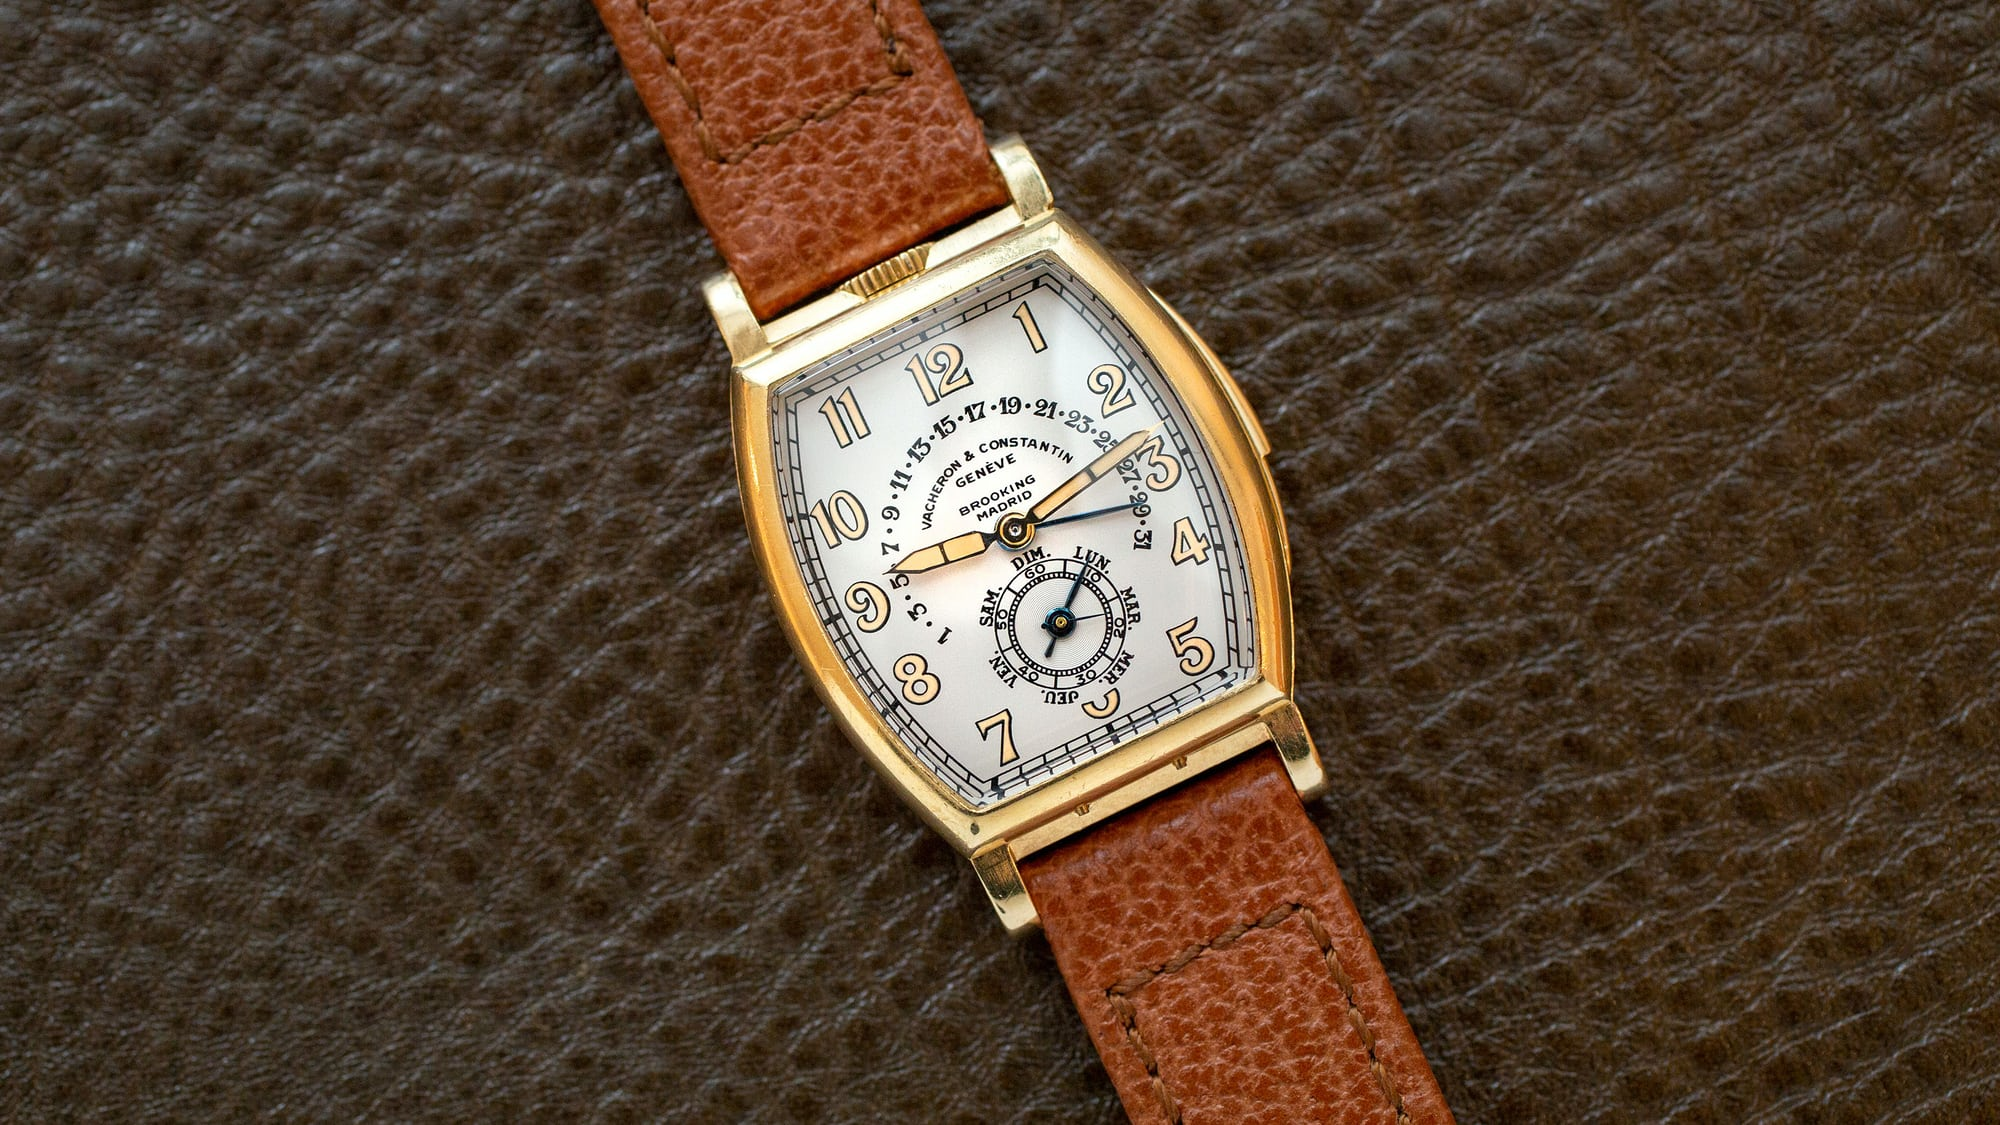 Hands-On: The Unique 1930s Vacheron Constantin Minute Repeater With Retrograde Calendar For Sale At Phillips